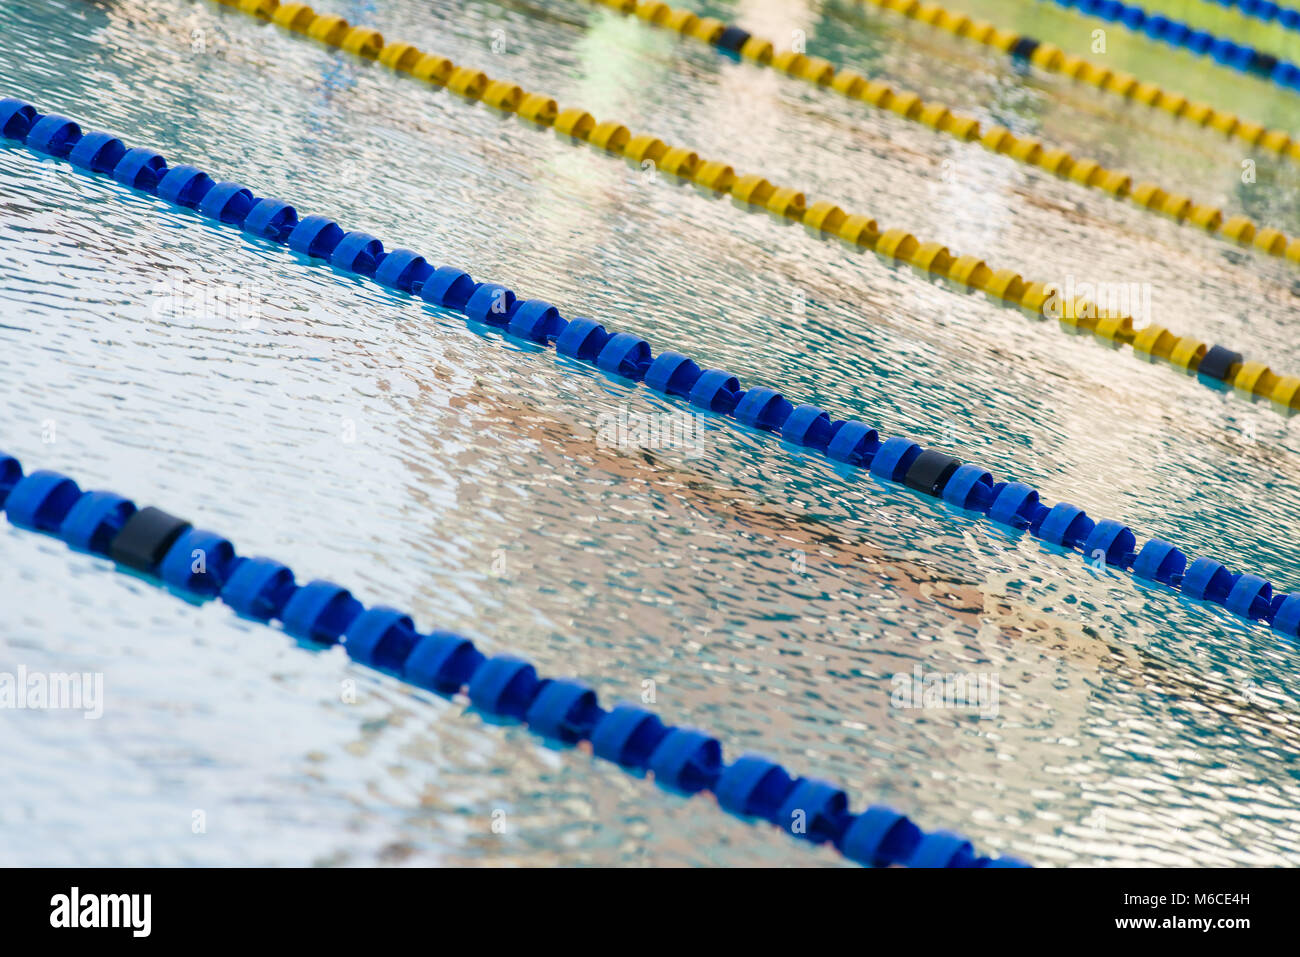 olympic swimming pool lanes. An Empty Outdoor Olympic Swimming Pool With Lanes Divided By Floatation Devices M